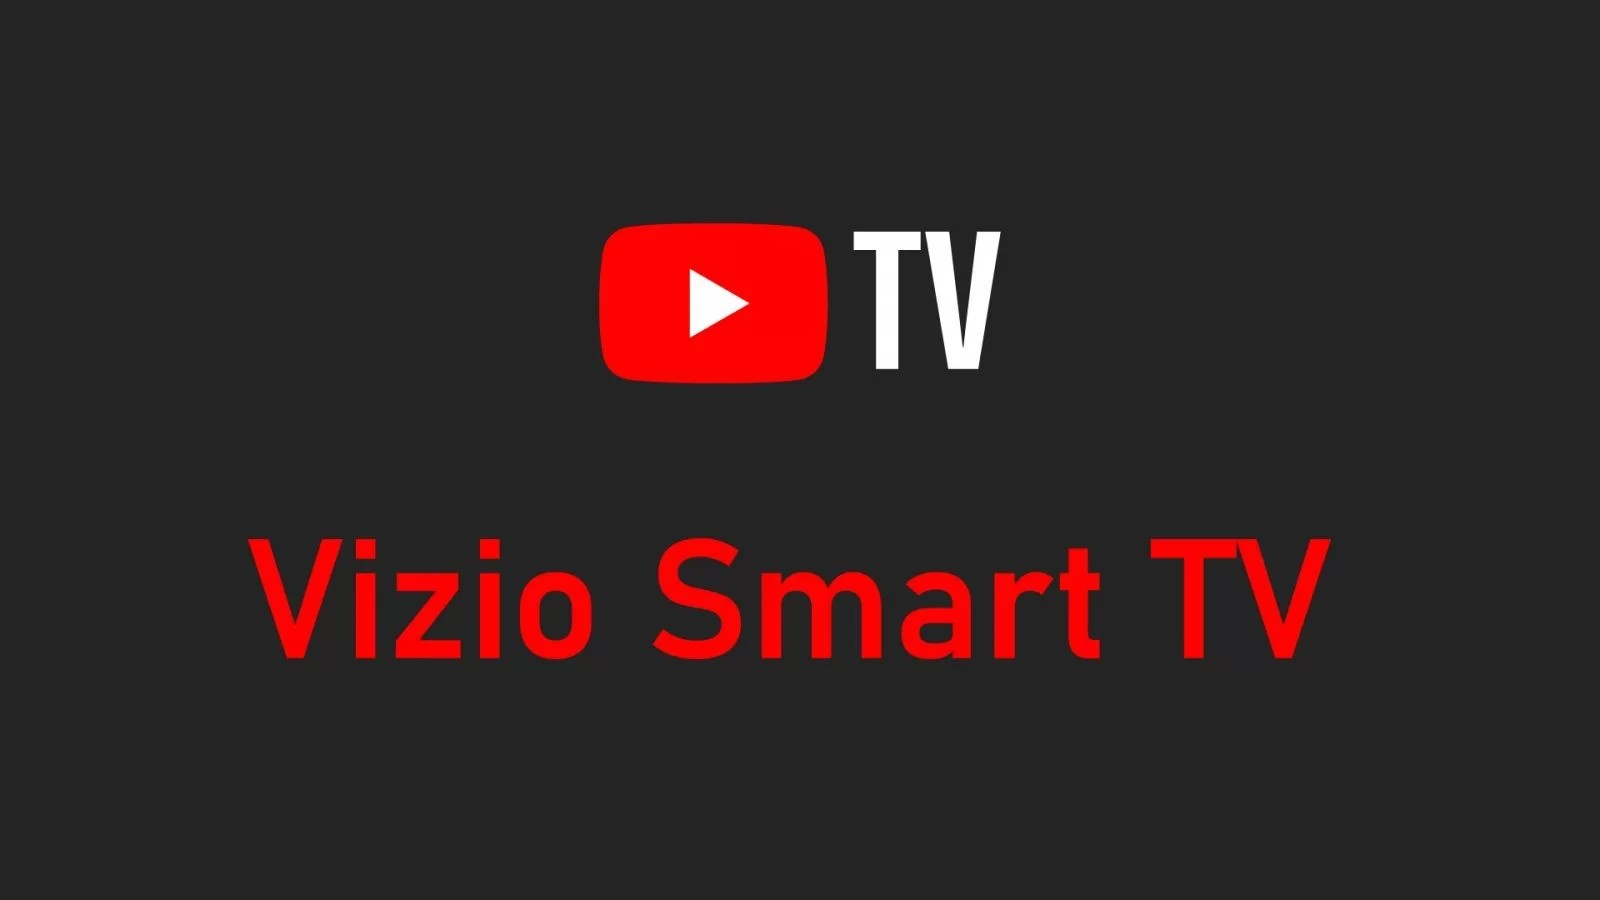 How To Watch Youtube Tv On Vizio Smart Tv Techowns